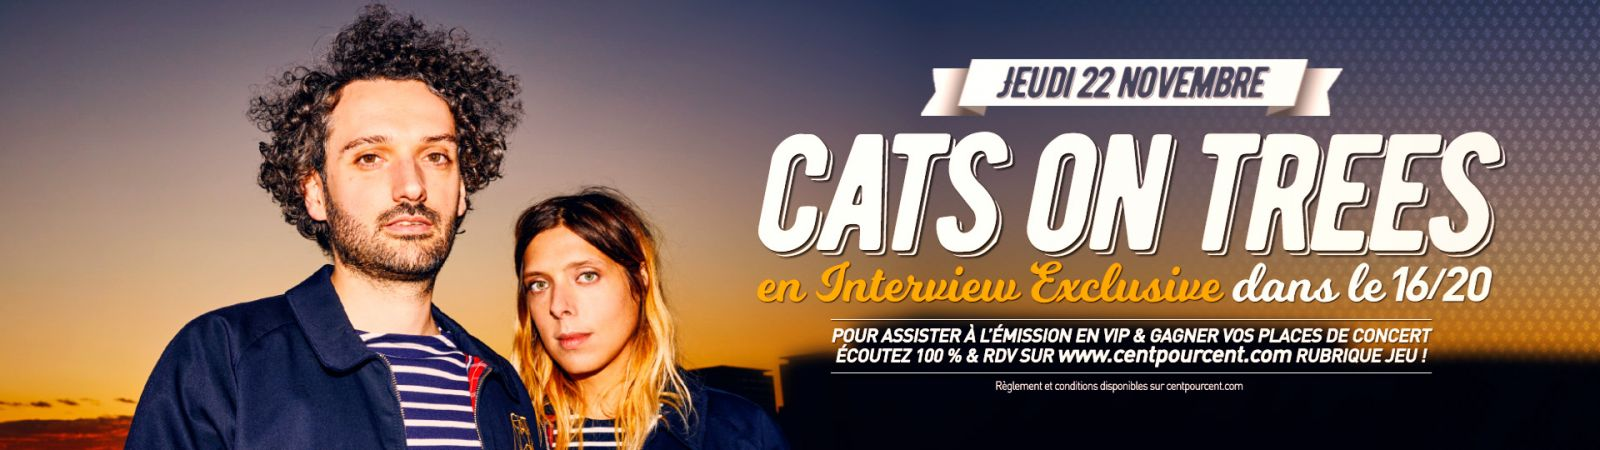 Cats on tree en direct dans le 16 20